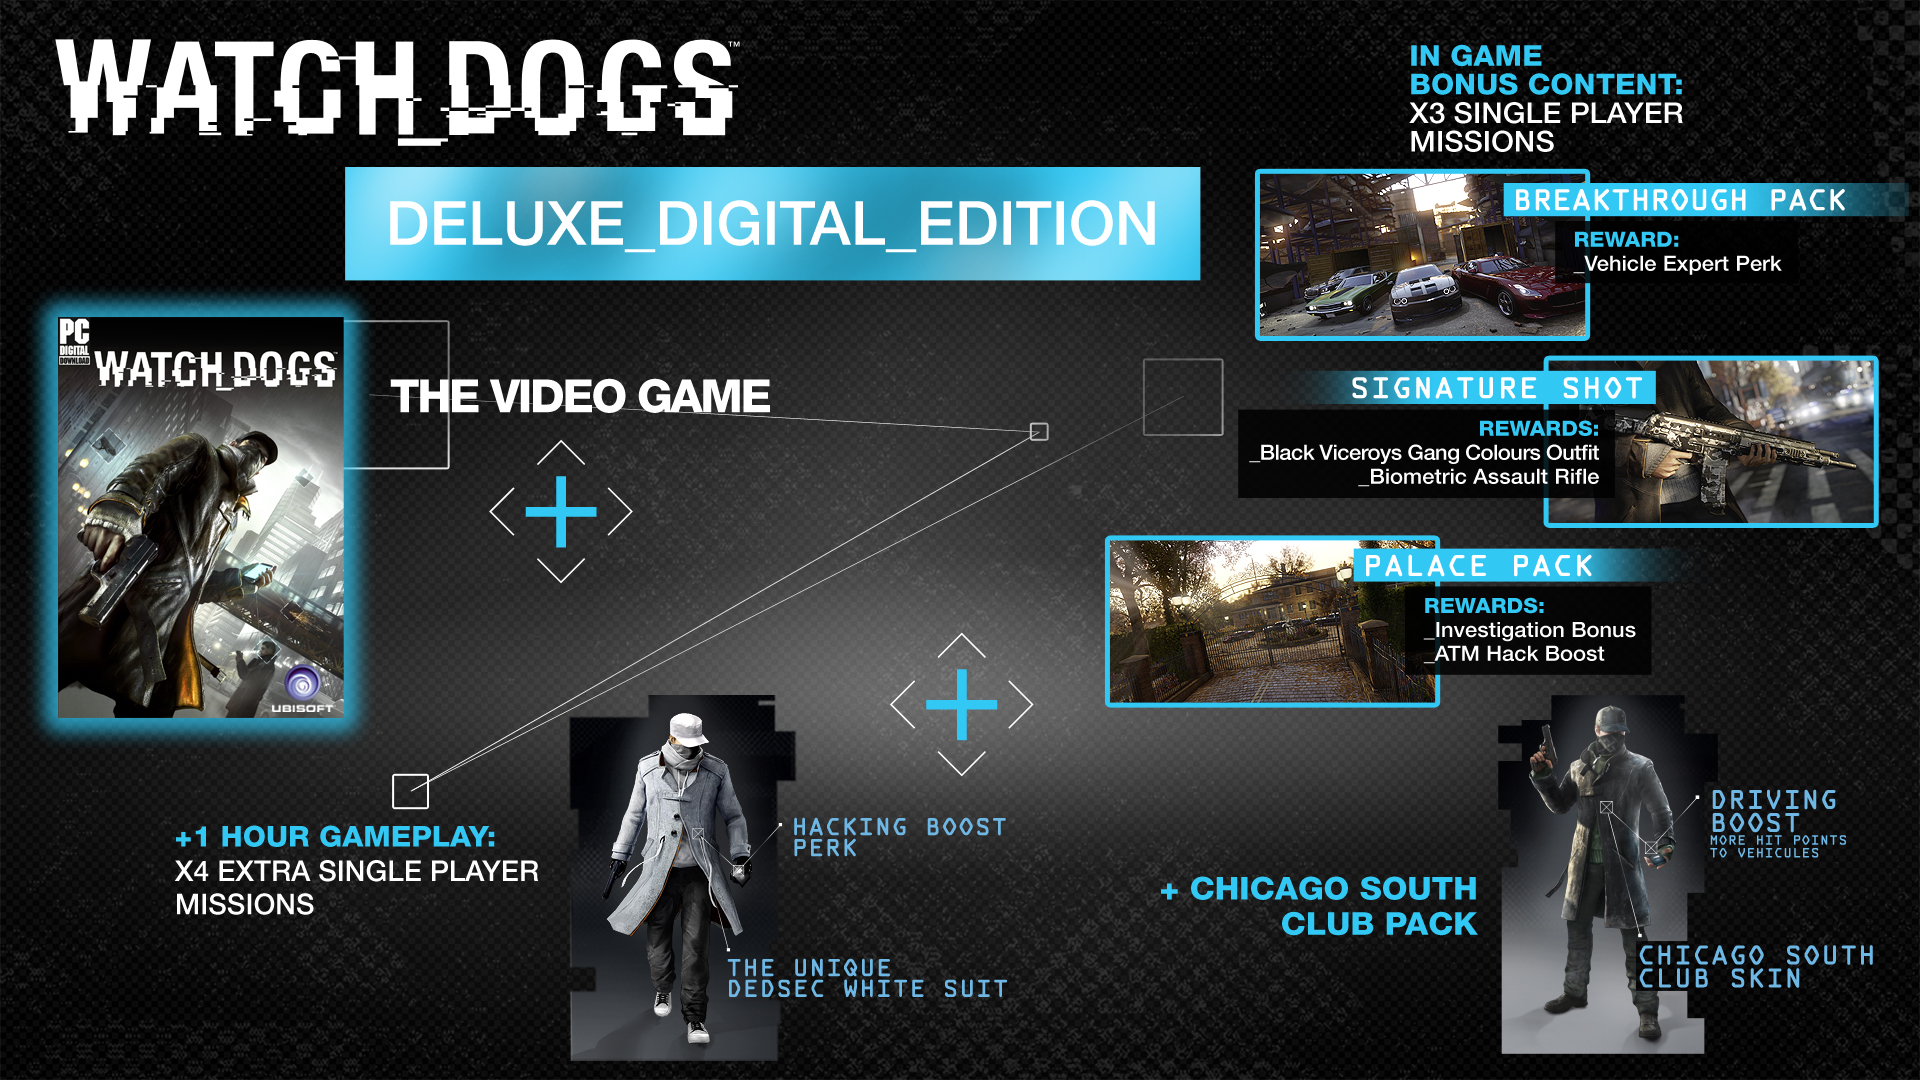 Watch Dogs How To Get Cyberpunk Pack